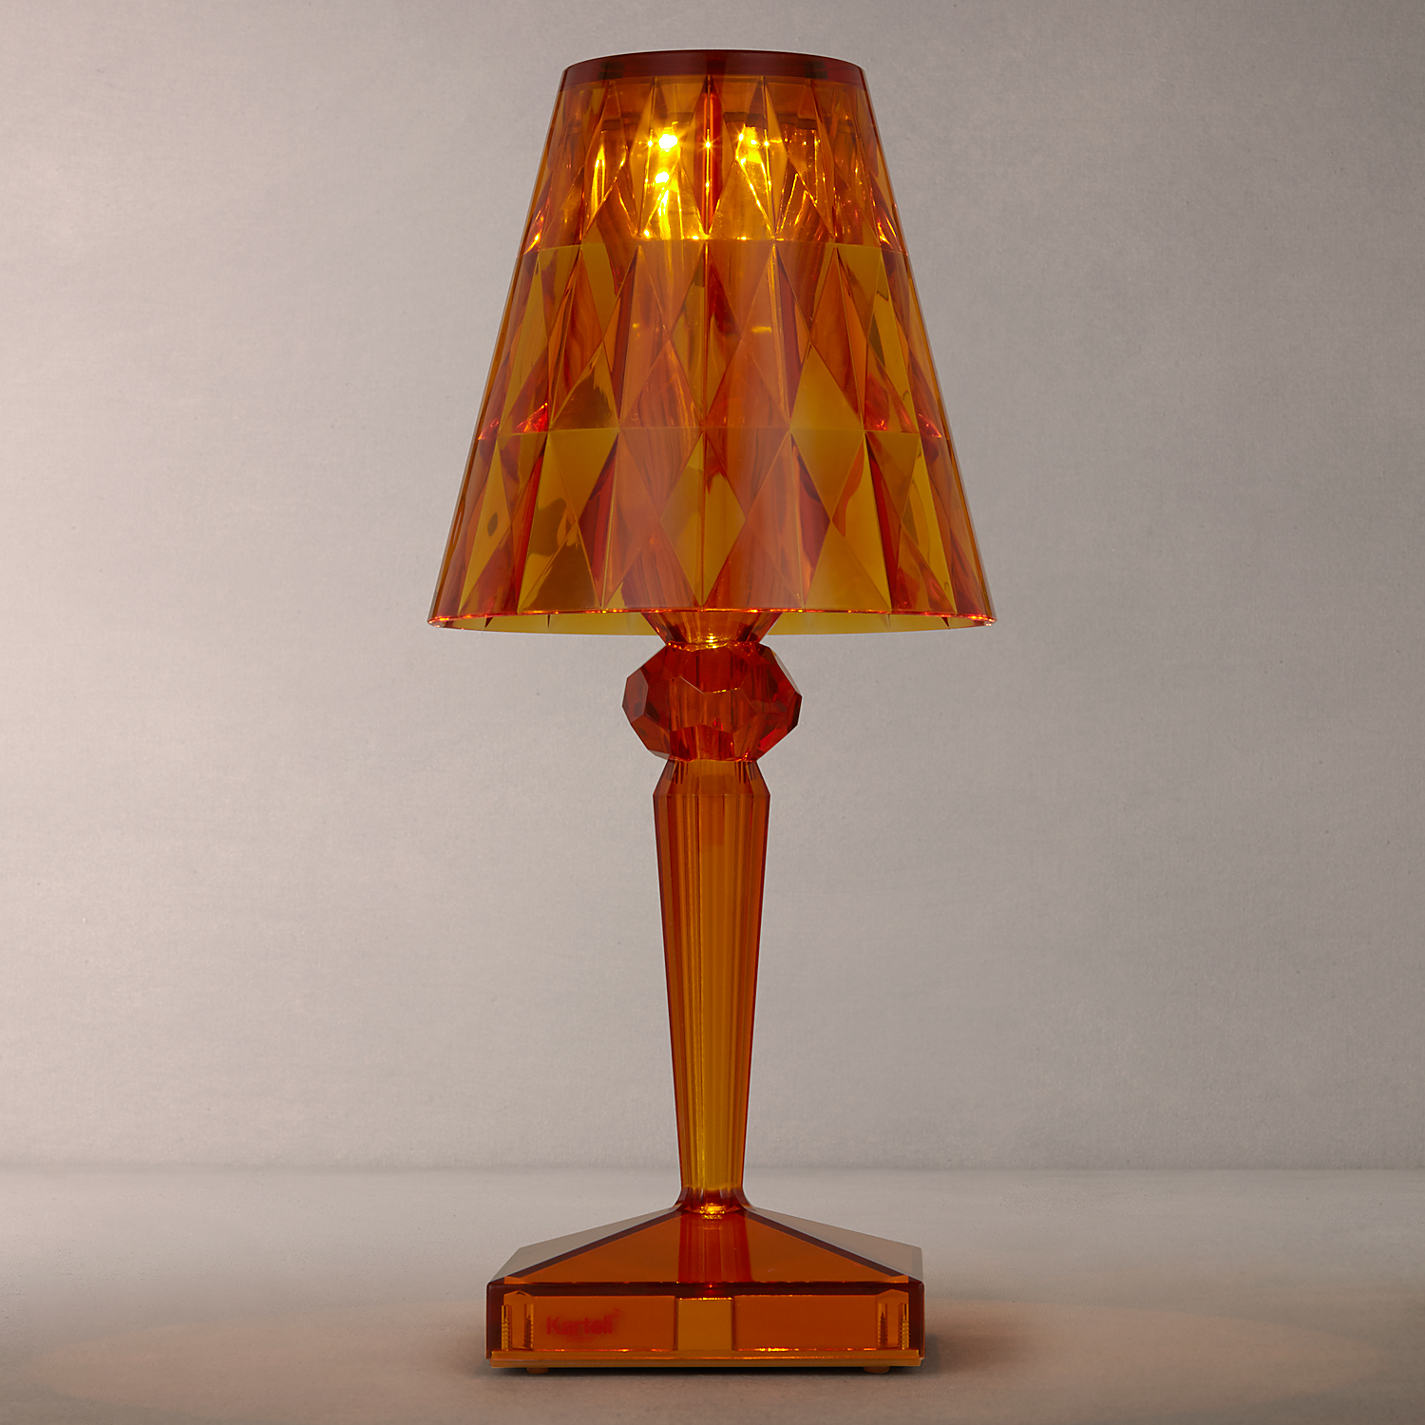 Buy kartell battery table lamp john lewis buy kartell battery table lamp online at johnlewis geotapseo Choice Image